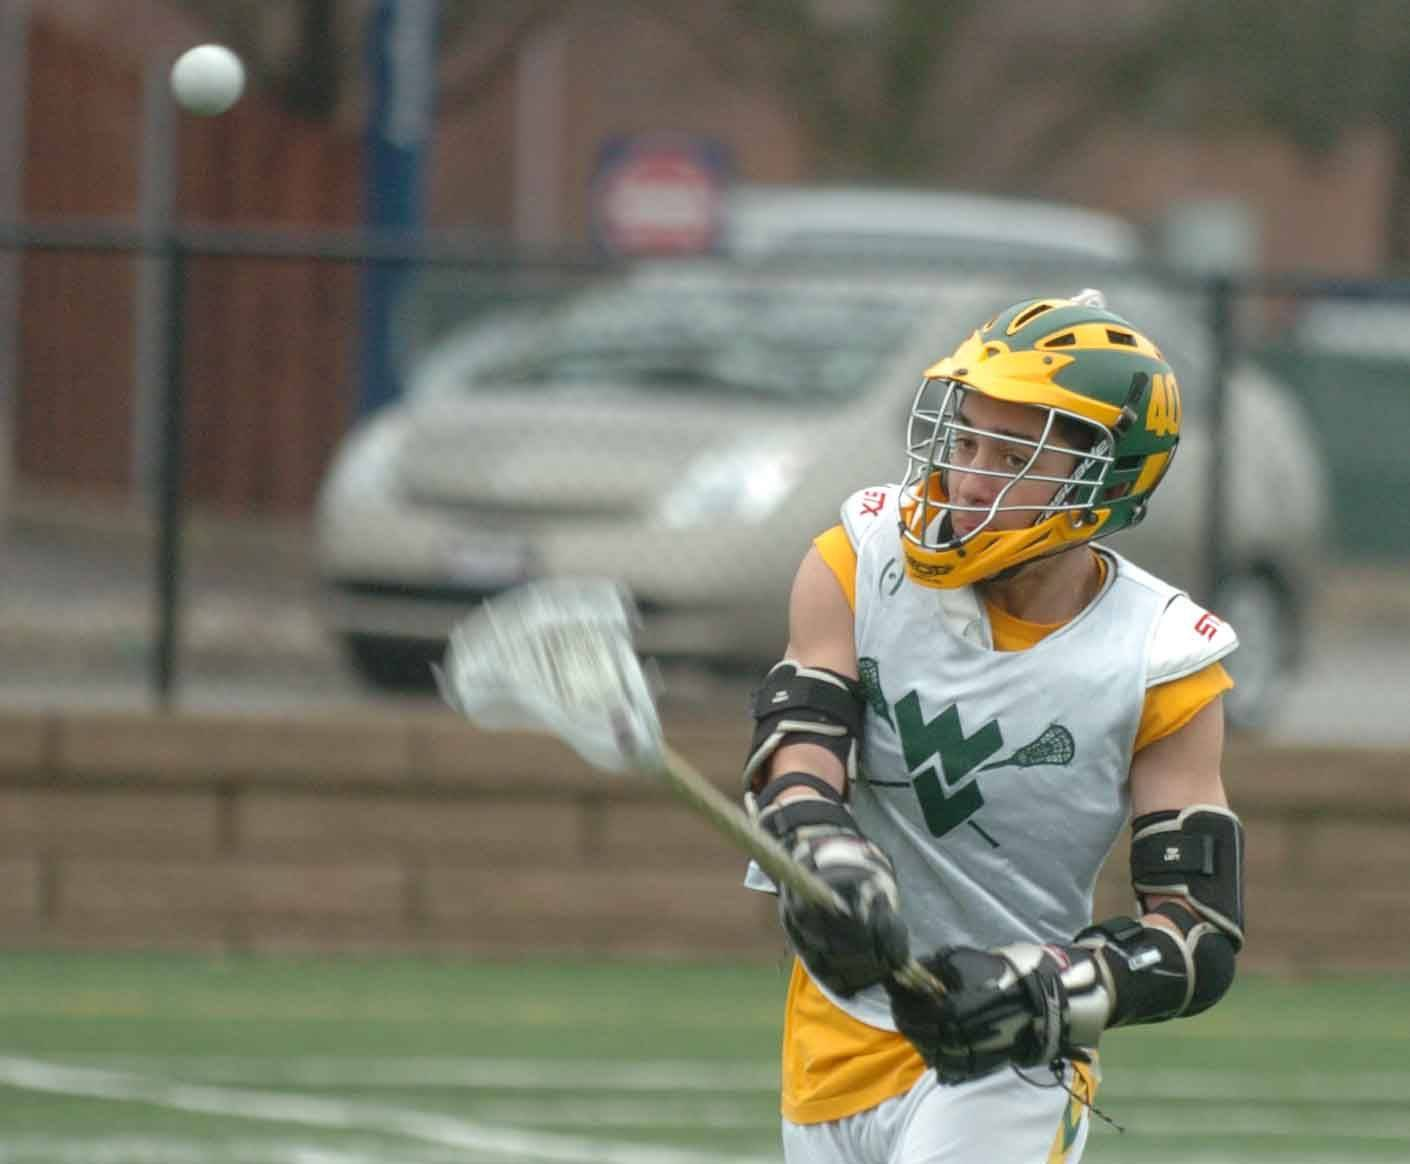 Brett Erwin of the Waubonsie/Metea Lacrosse team practices shooting drills at Aurora University.